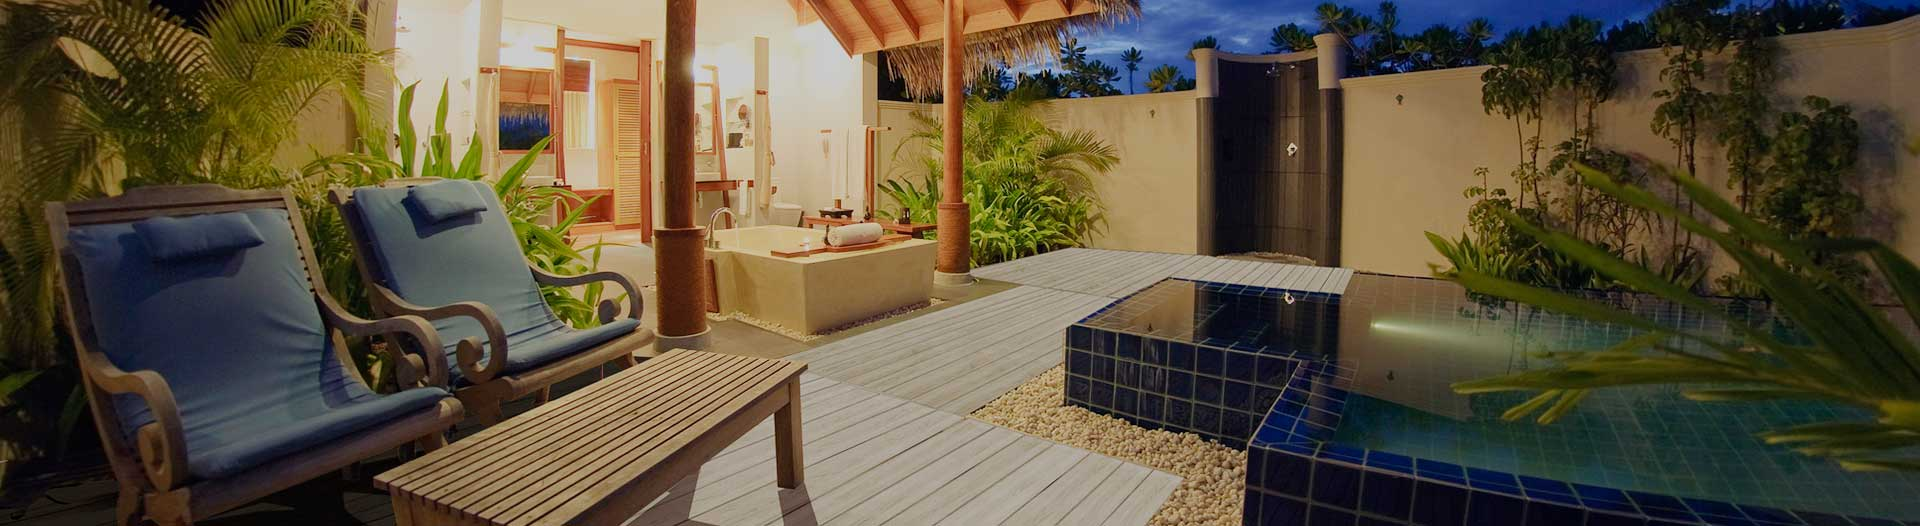 WPC Decking: A New Type of Decorative Floor